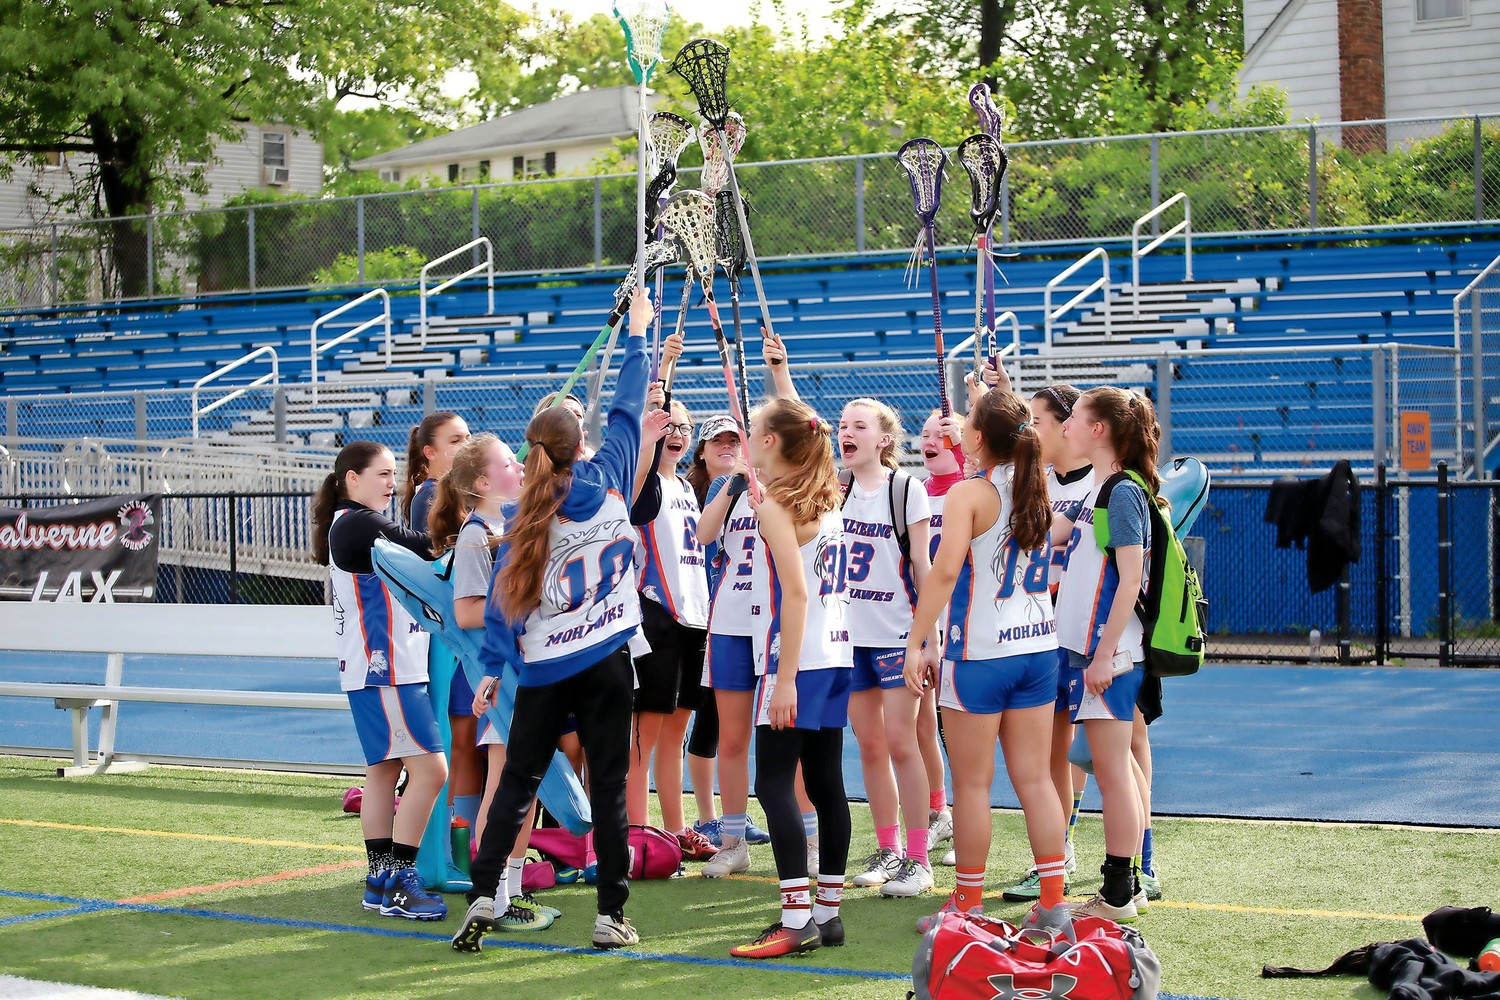 Hundreds of lacrosse players took part in the 11th annual Malverne Lax Day on Sunday, hosted by the Malverne Mohawks Lacrosse Club.